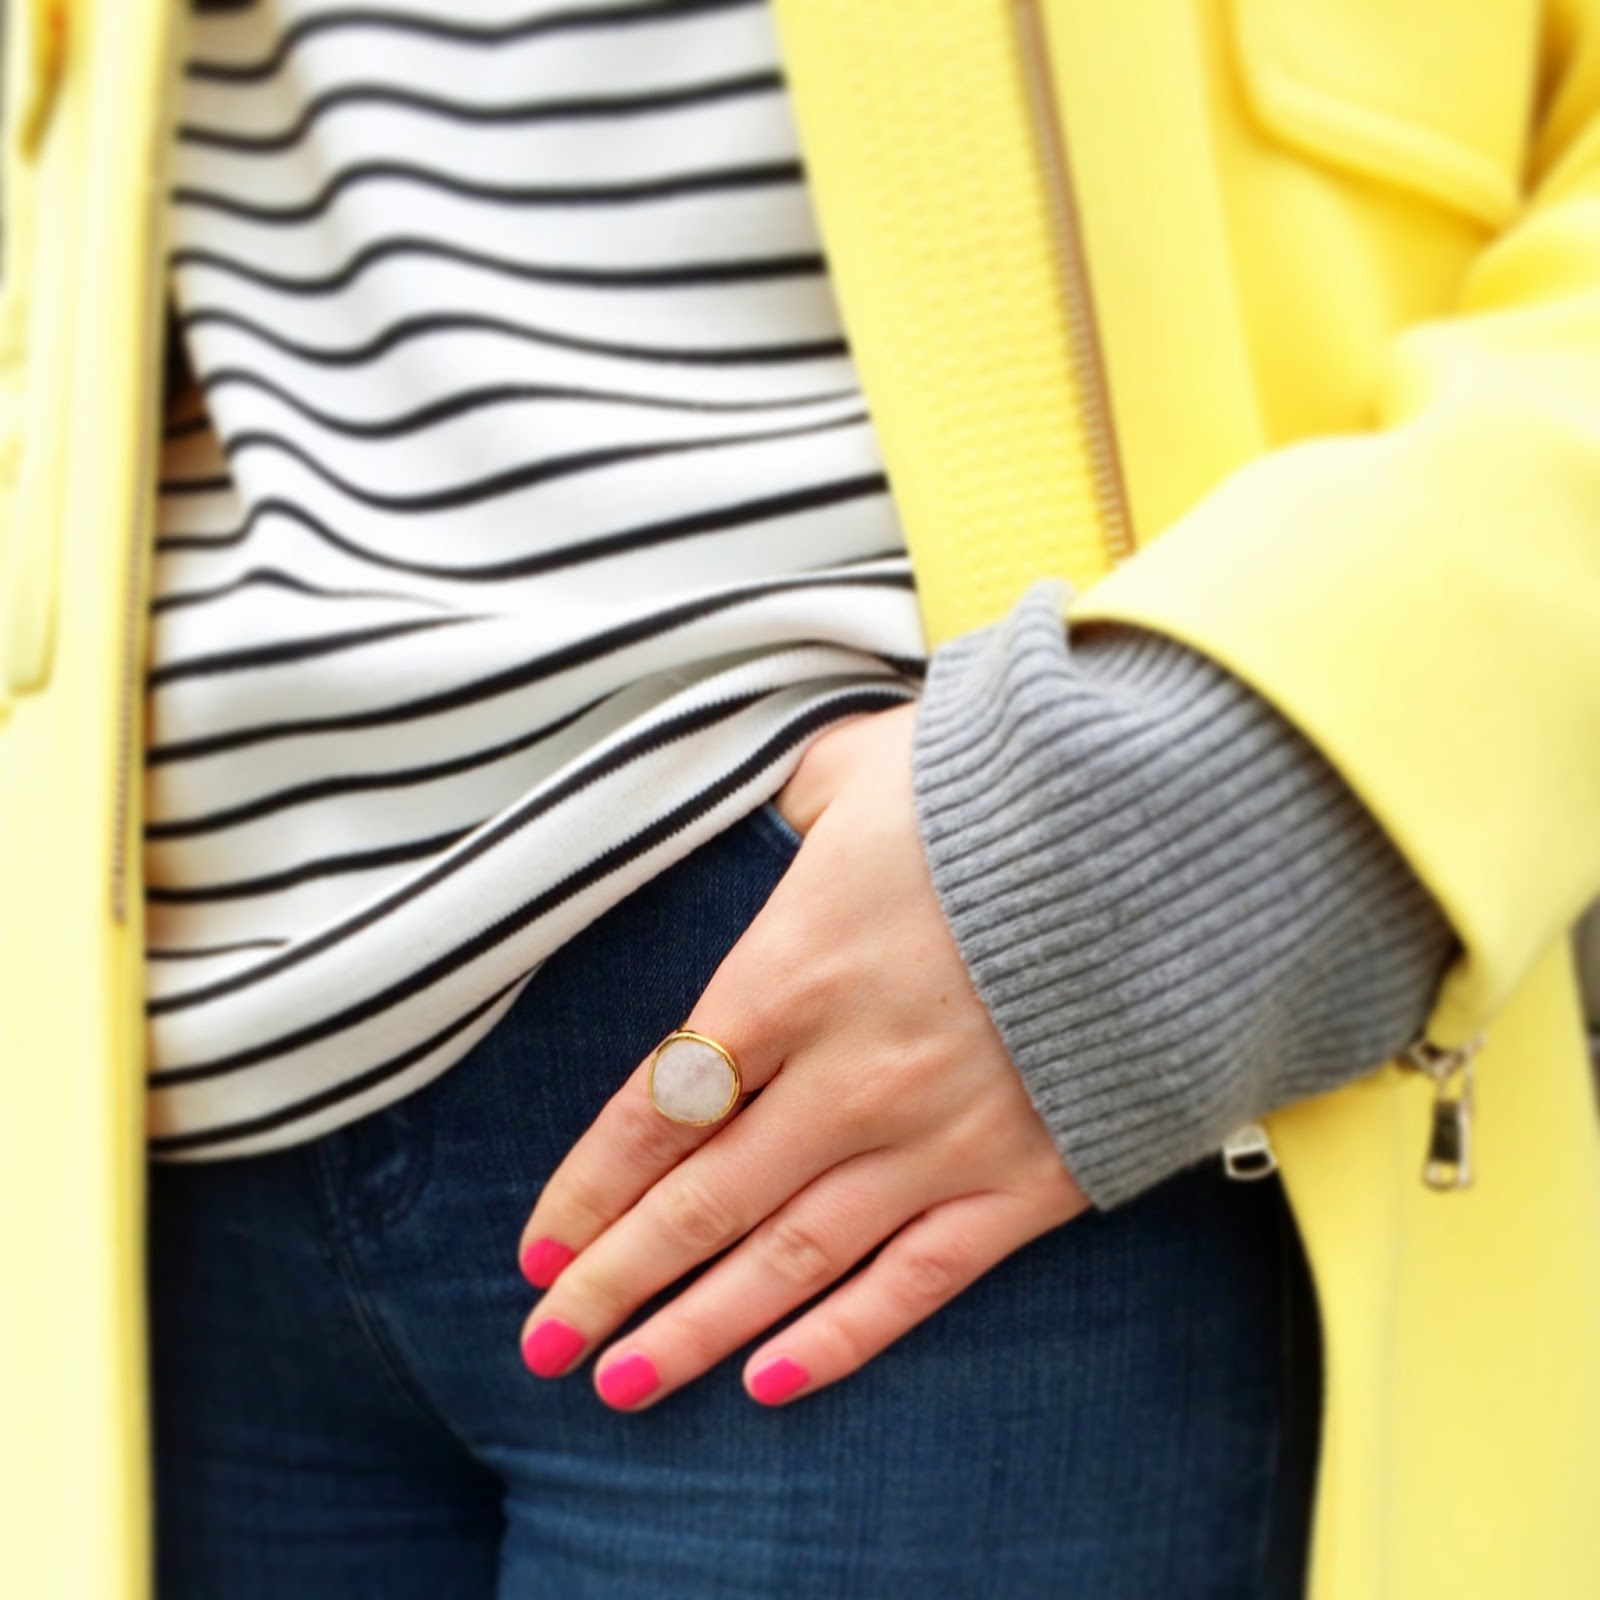 dior nail polish, dior polish, dior plaza, stripes, yellow coat, j brand jean, chrissabella